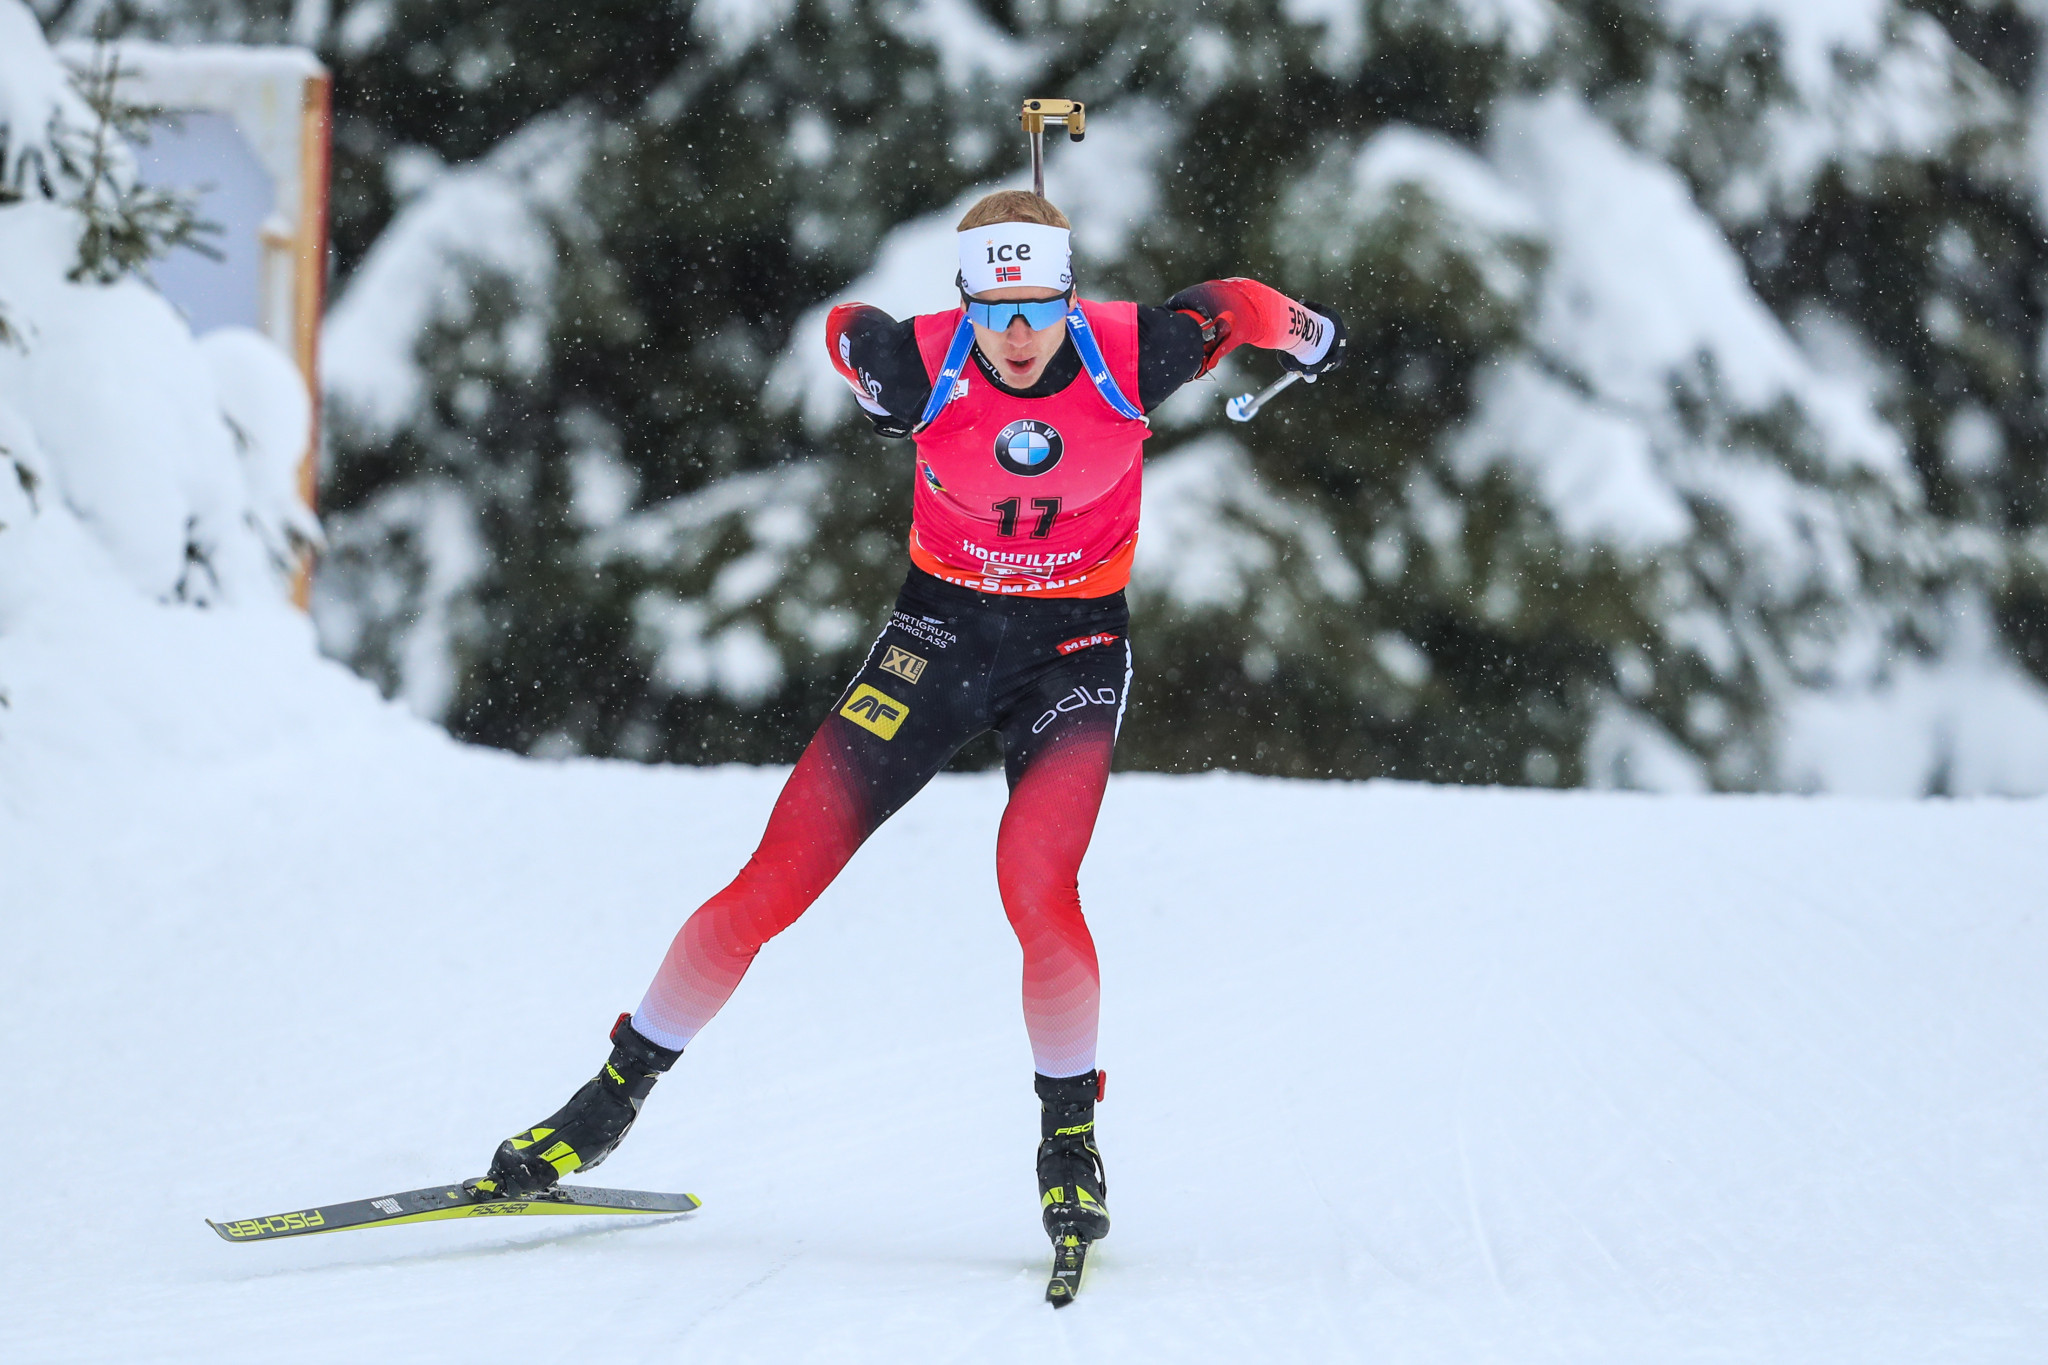 Bø records second straight victory at IBU World Cup in Hochfilzen